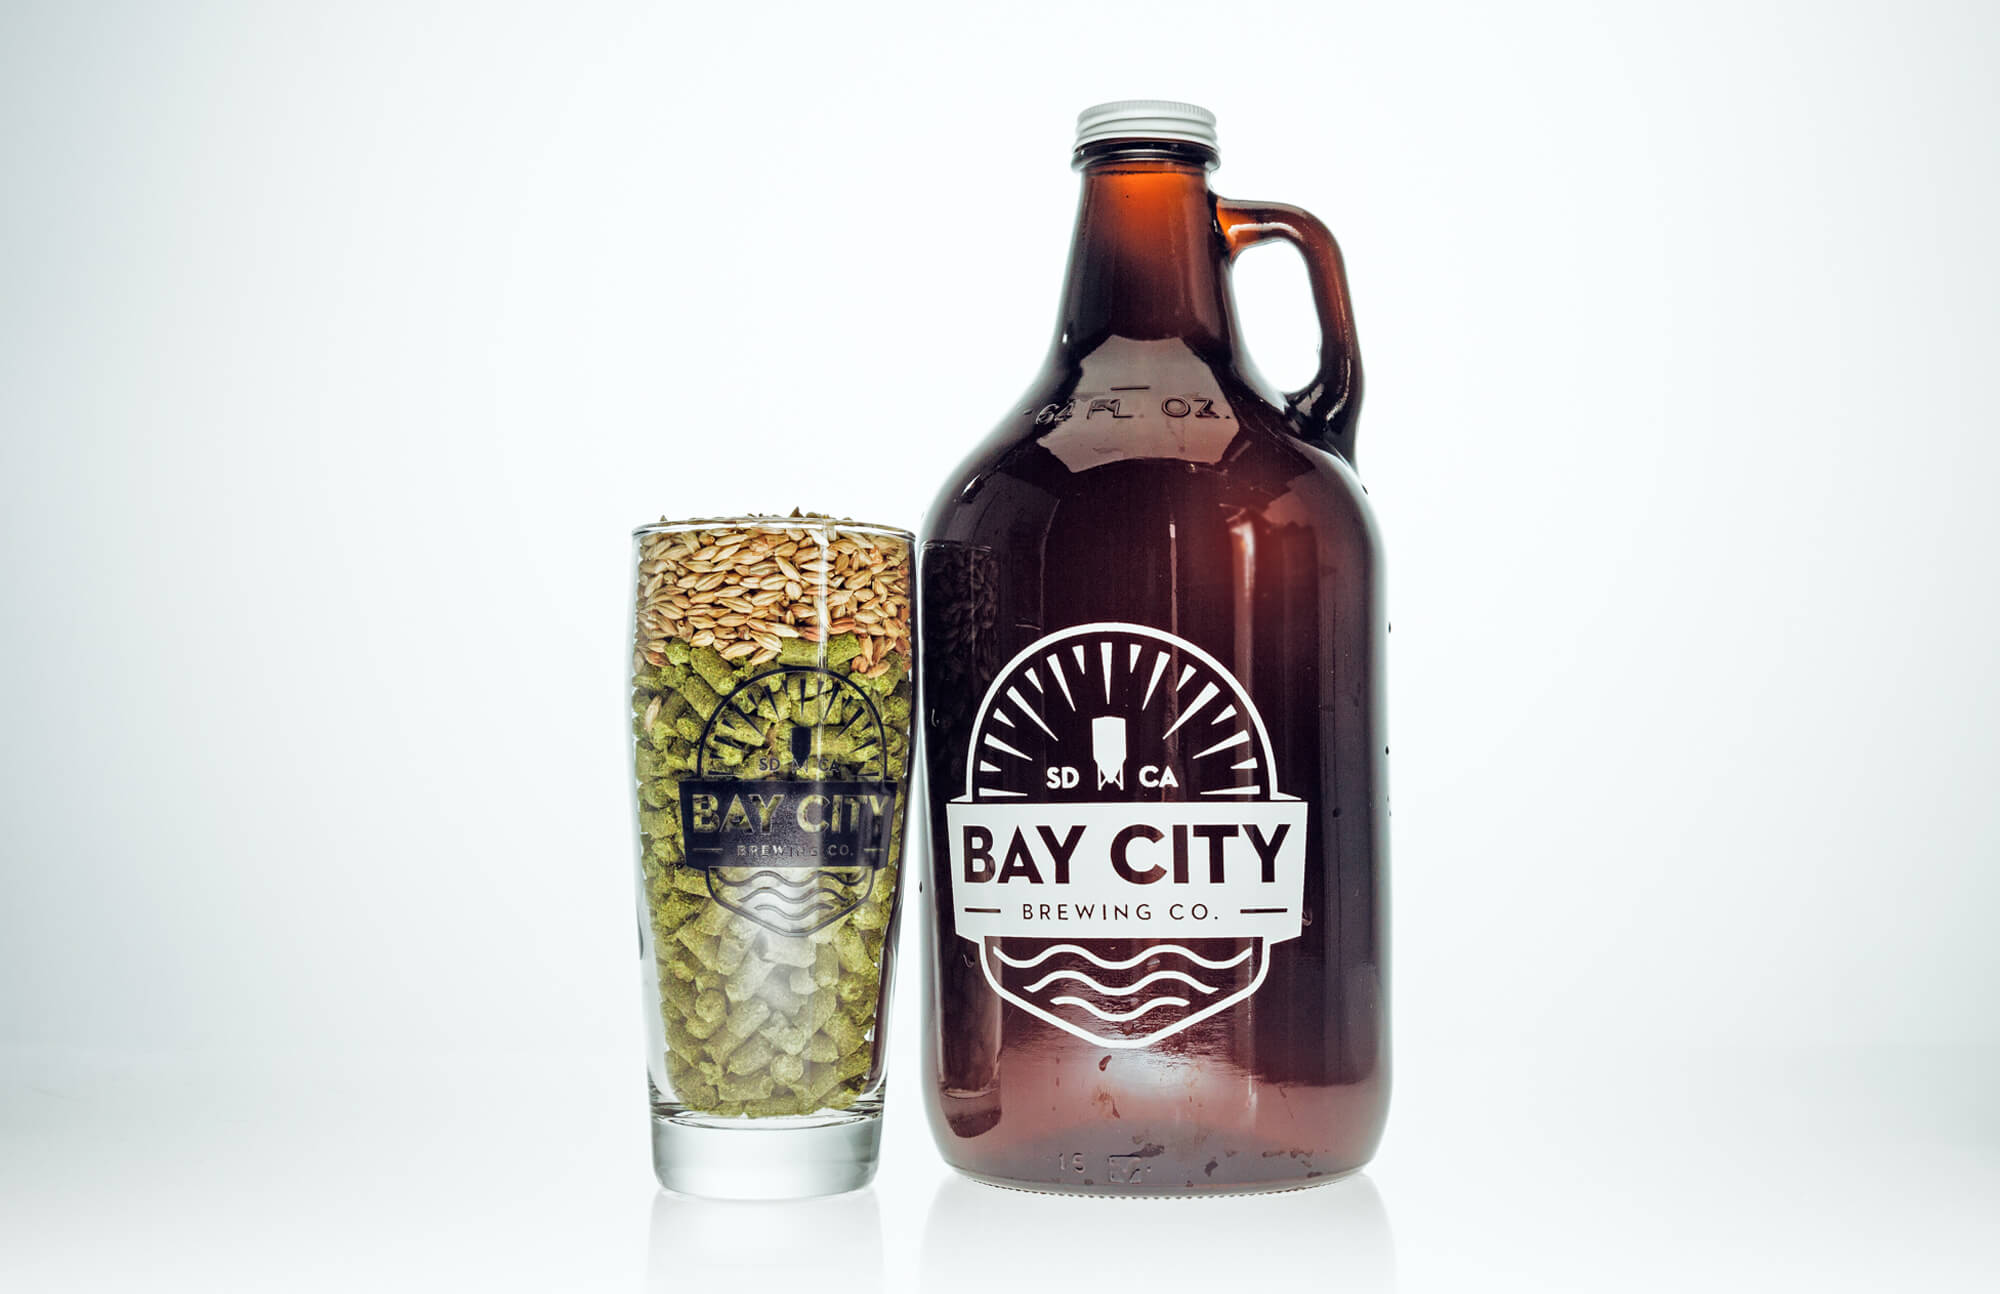 bay-city-brewing-company-sandiego-3